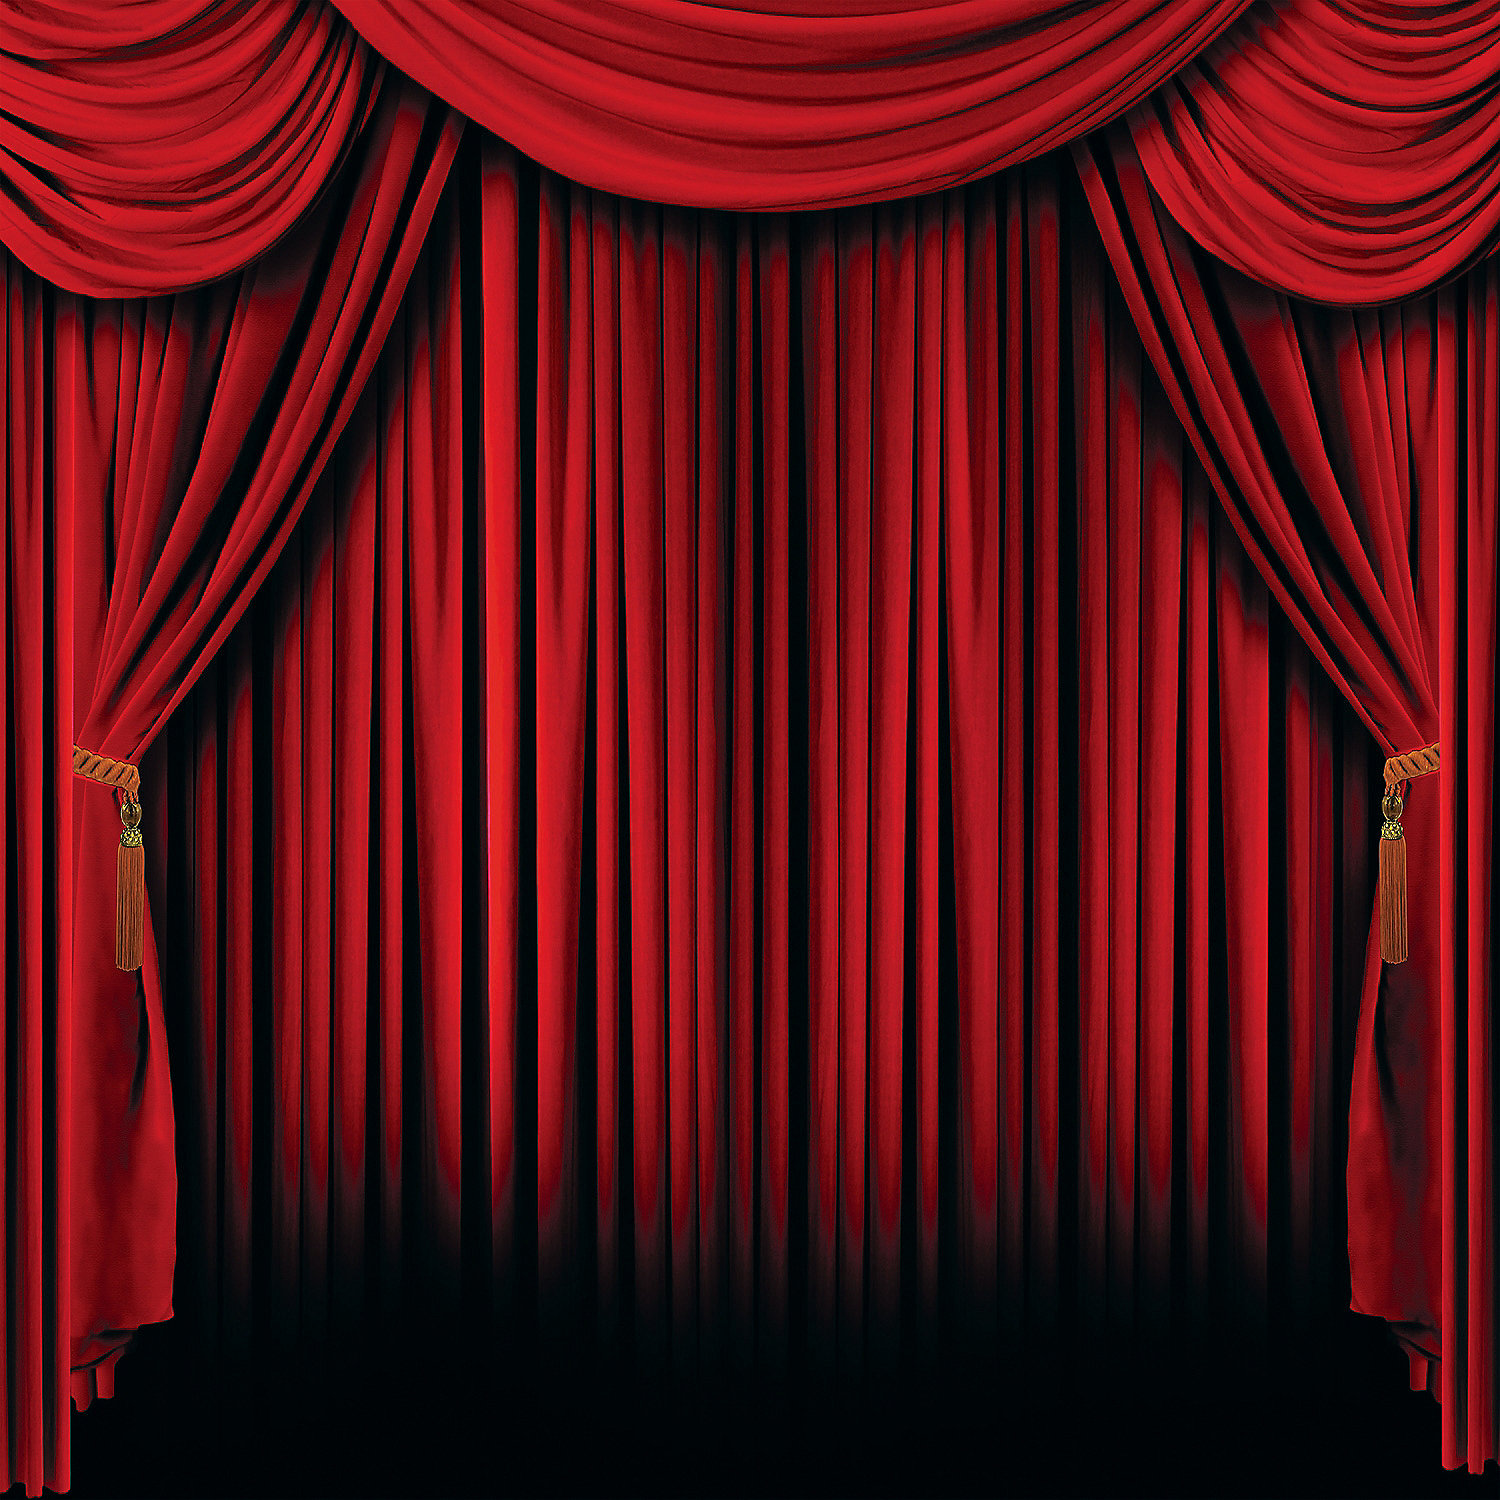 Http Www Orientaltrading Com Red Curtain Backdrop Banner A2 3 2329 Fltr